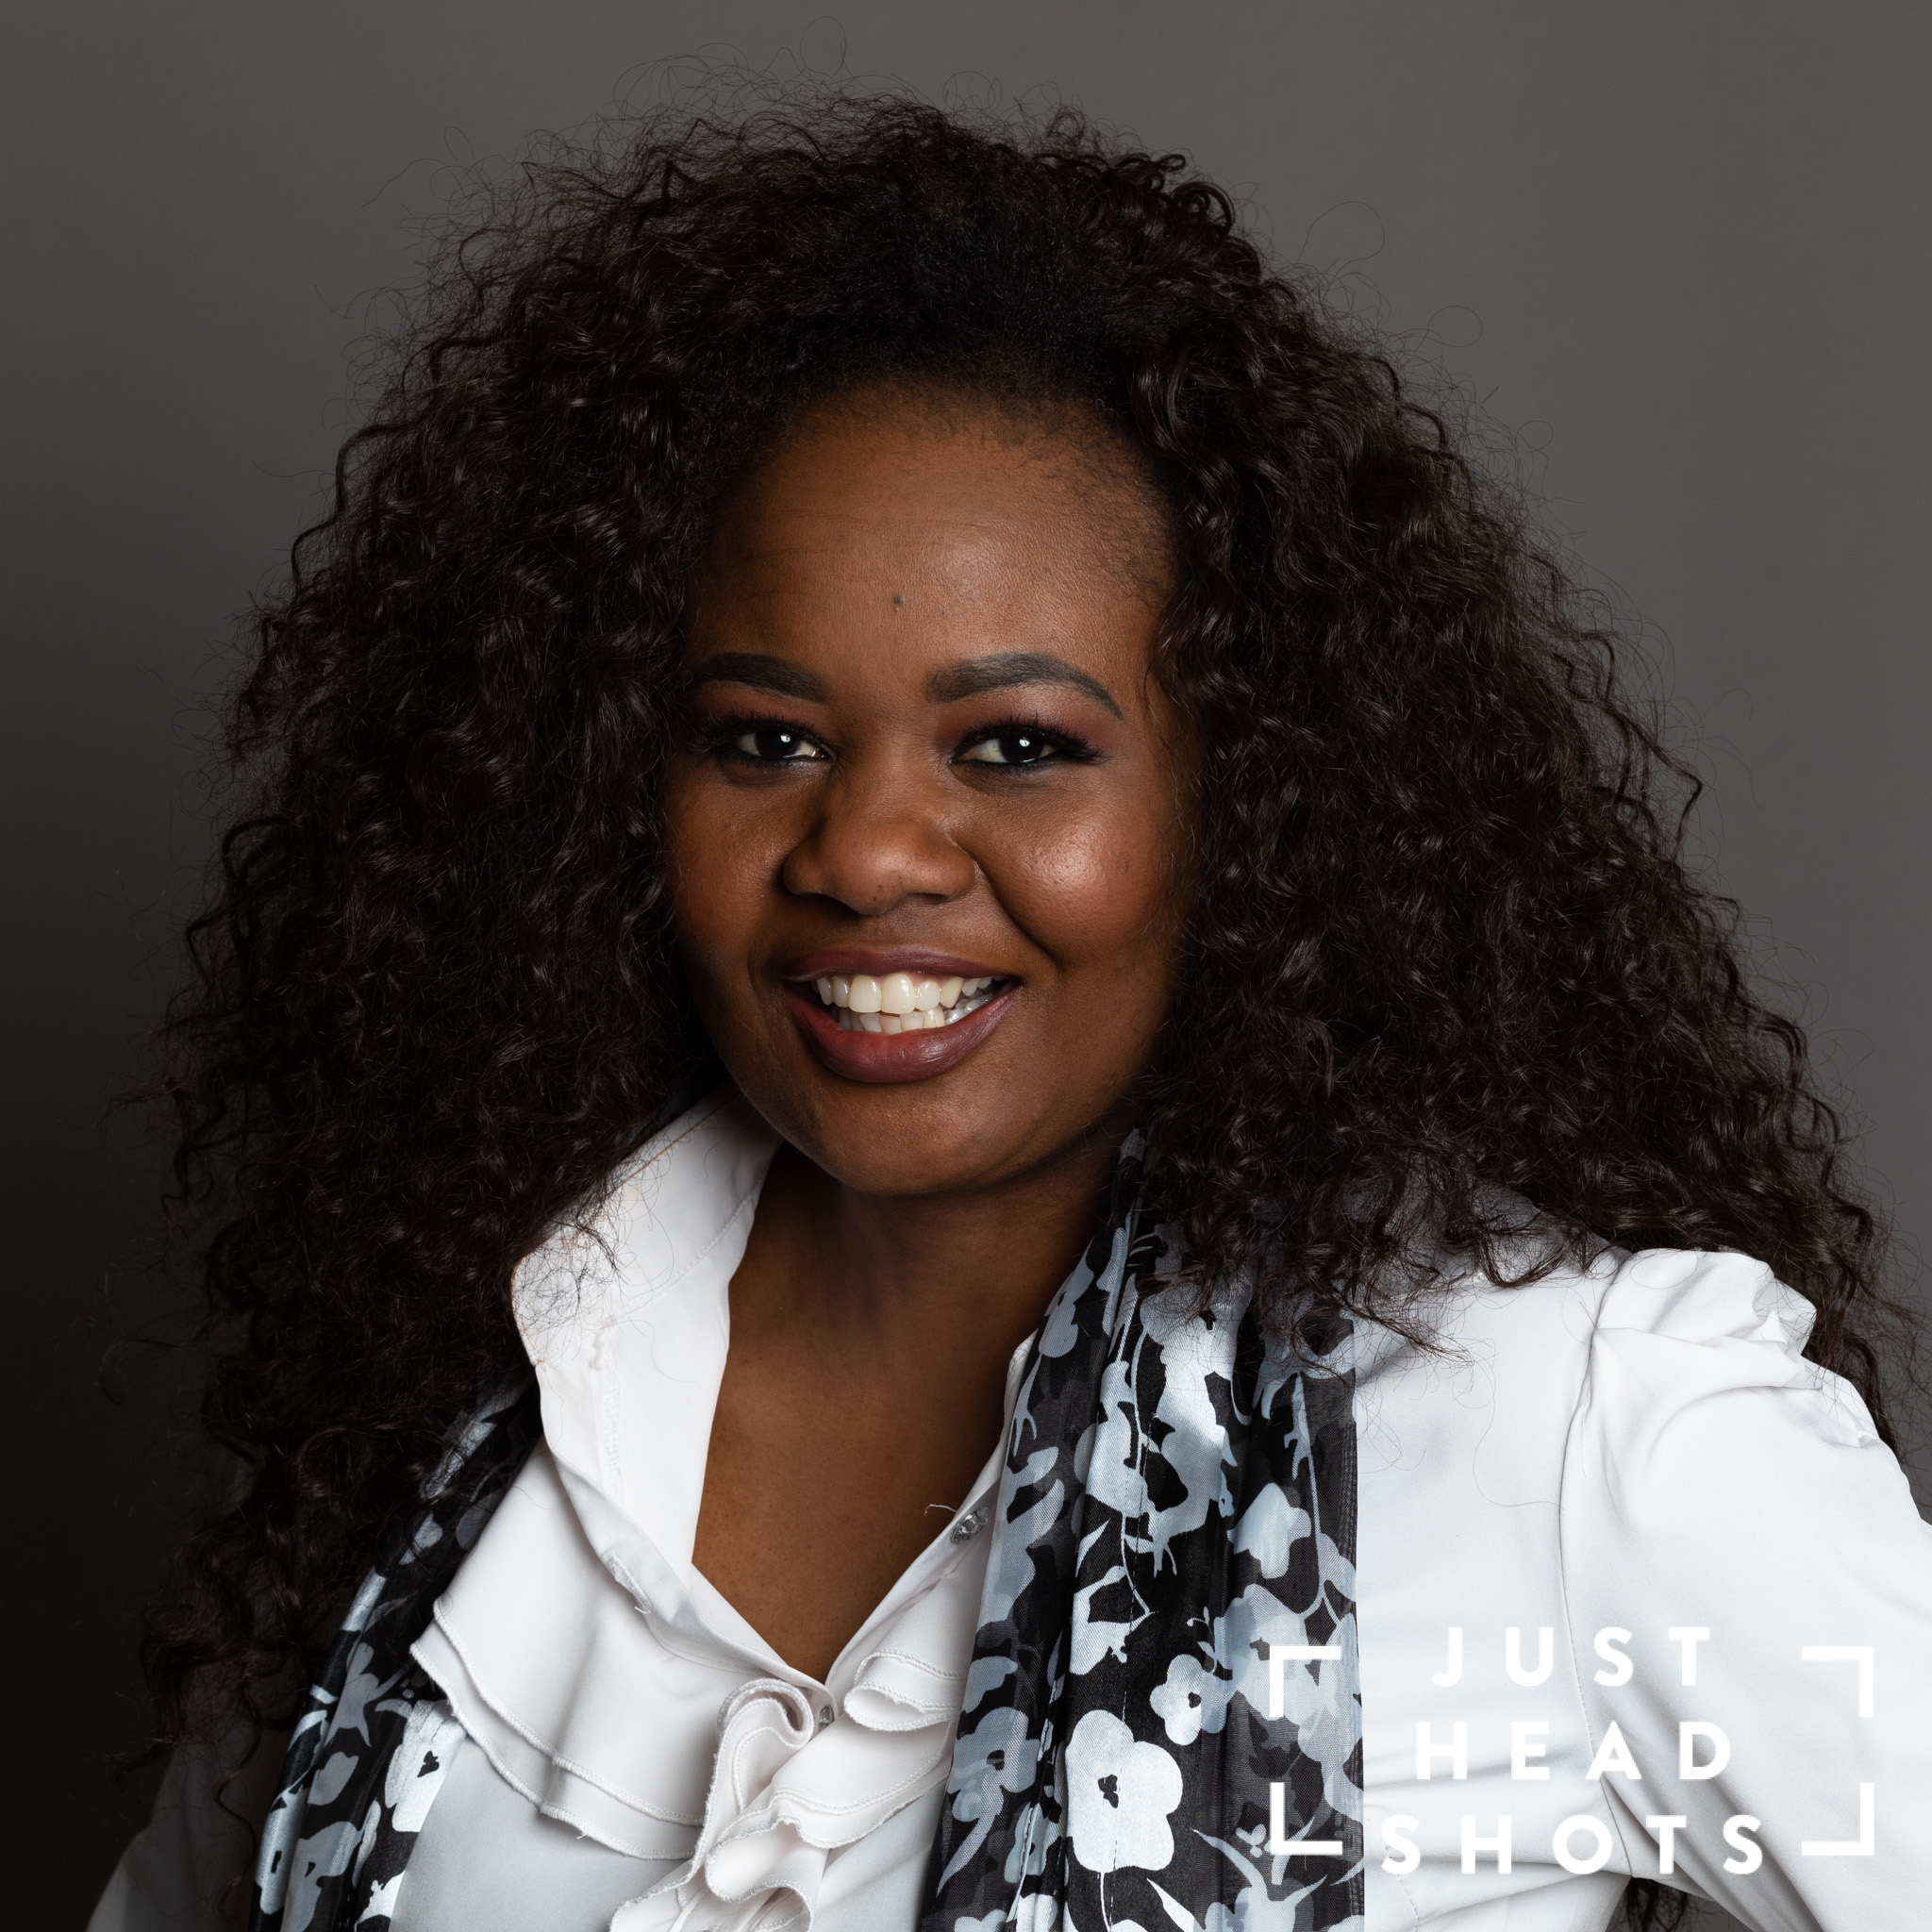 Professional headshot of a black woman wearing a white blouse and scarf, photographed with Profoto studio flash on dark grey background with shoulders angled to the left of the photo.